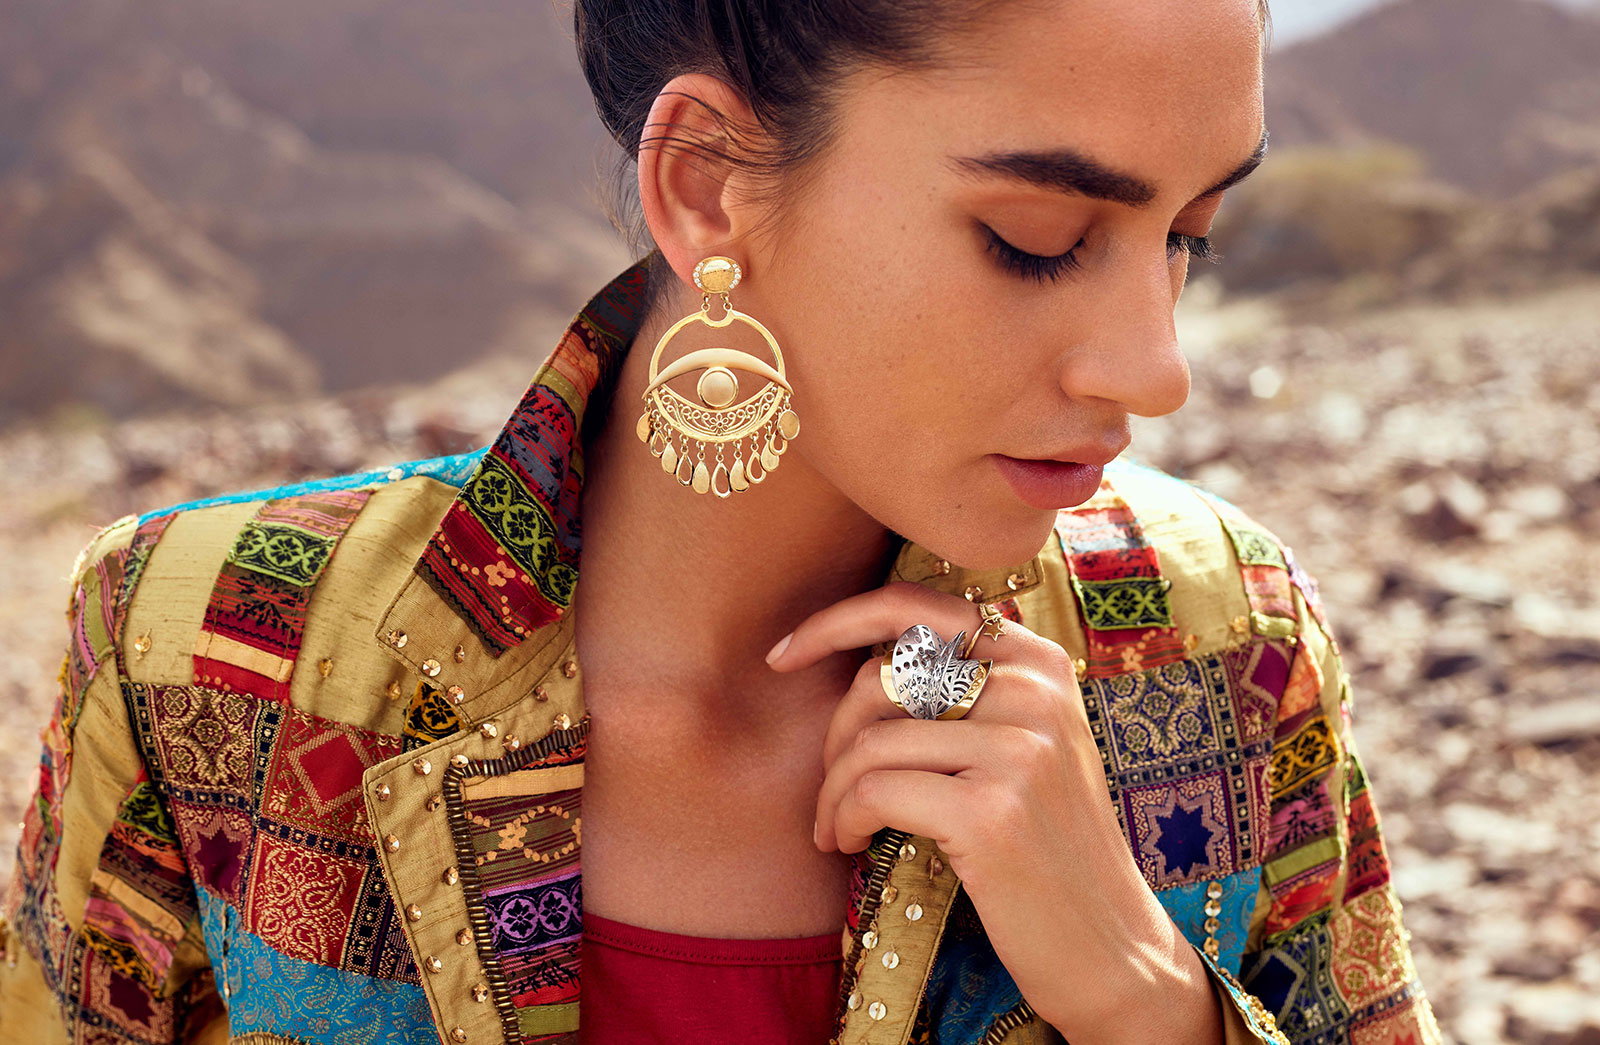 Earrings and a ring from The Gypsy collection by Azza Fahmy